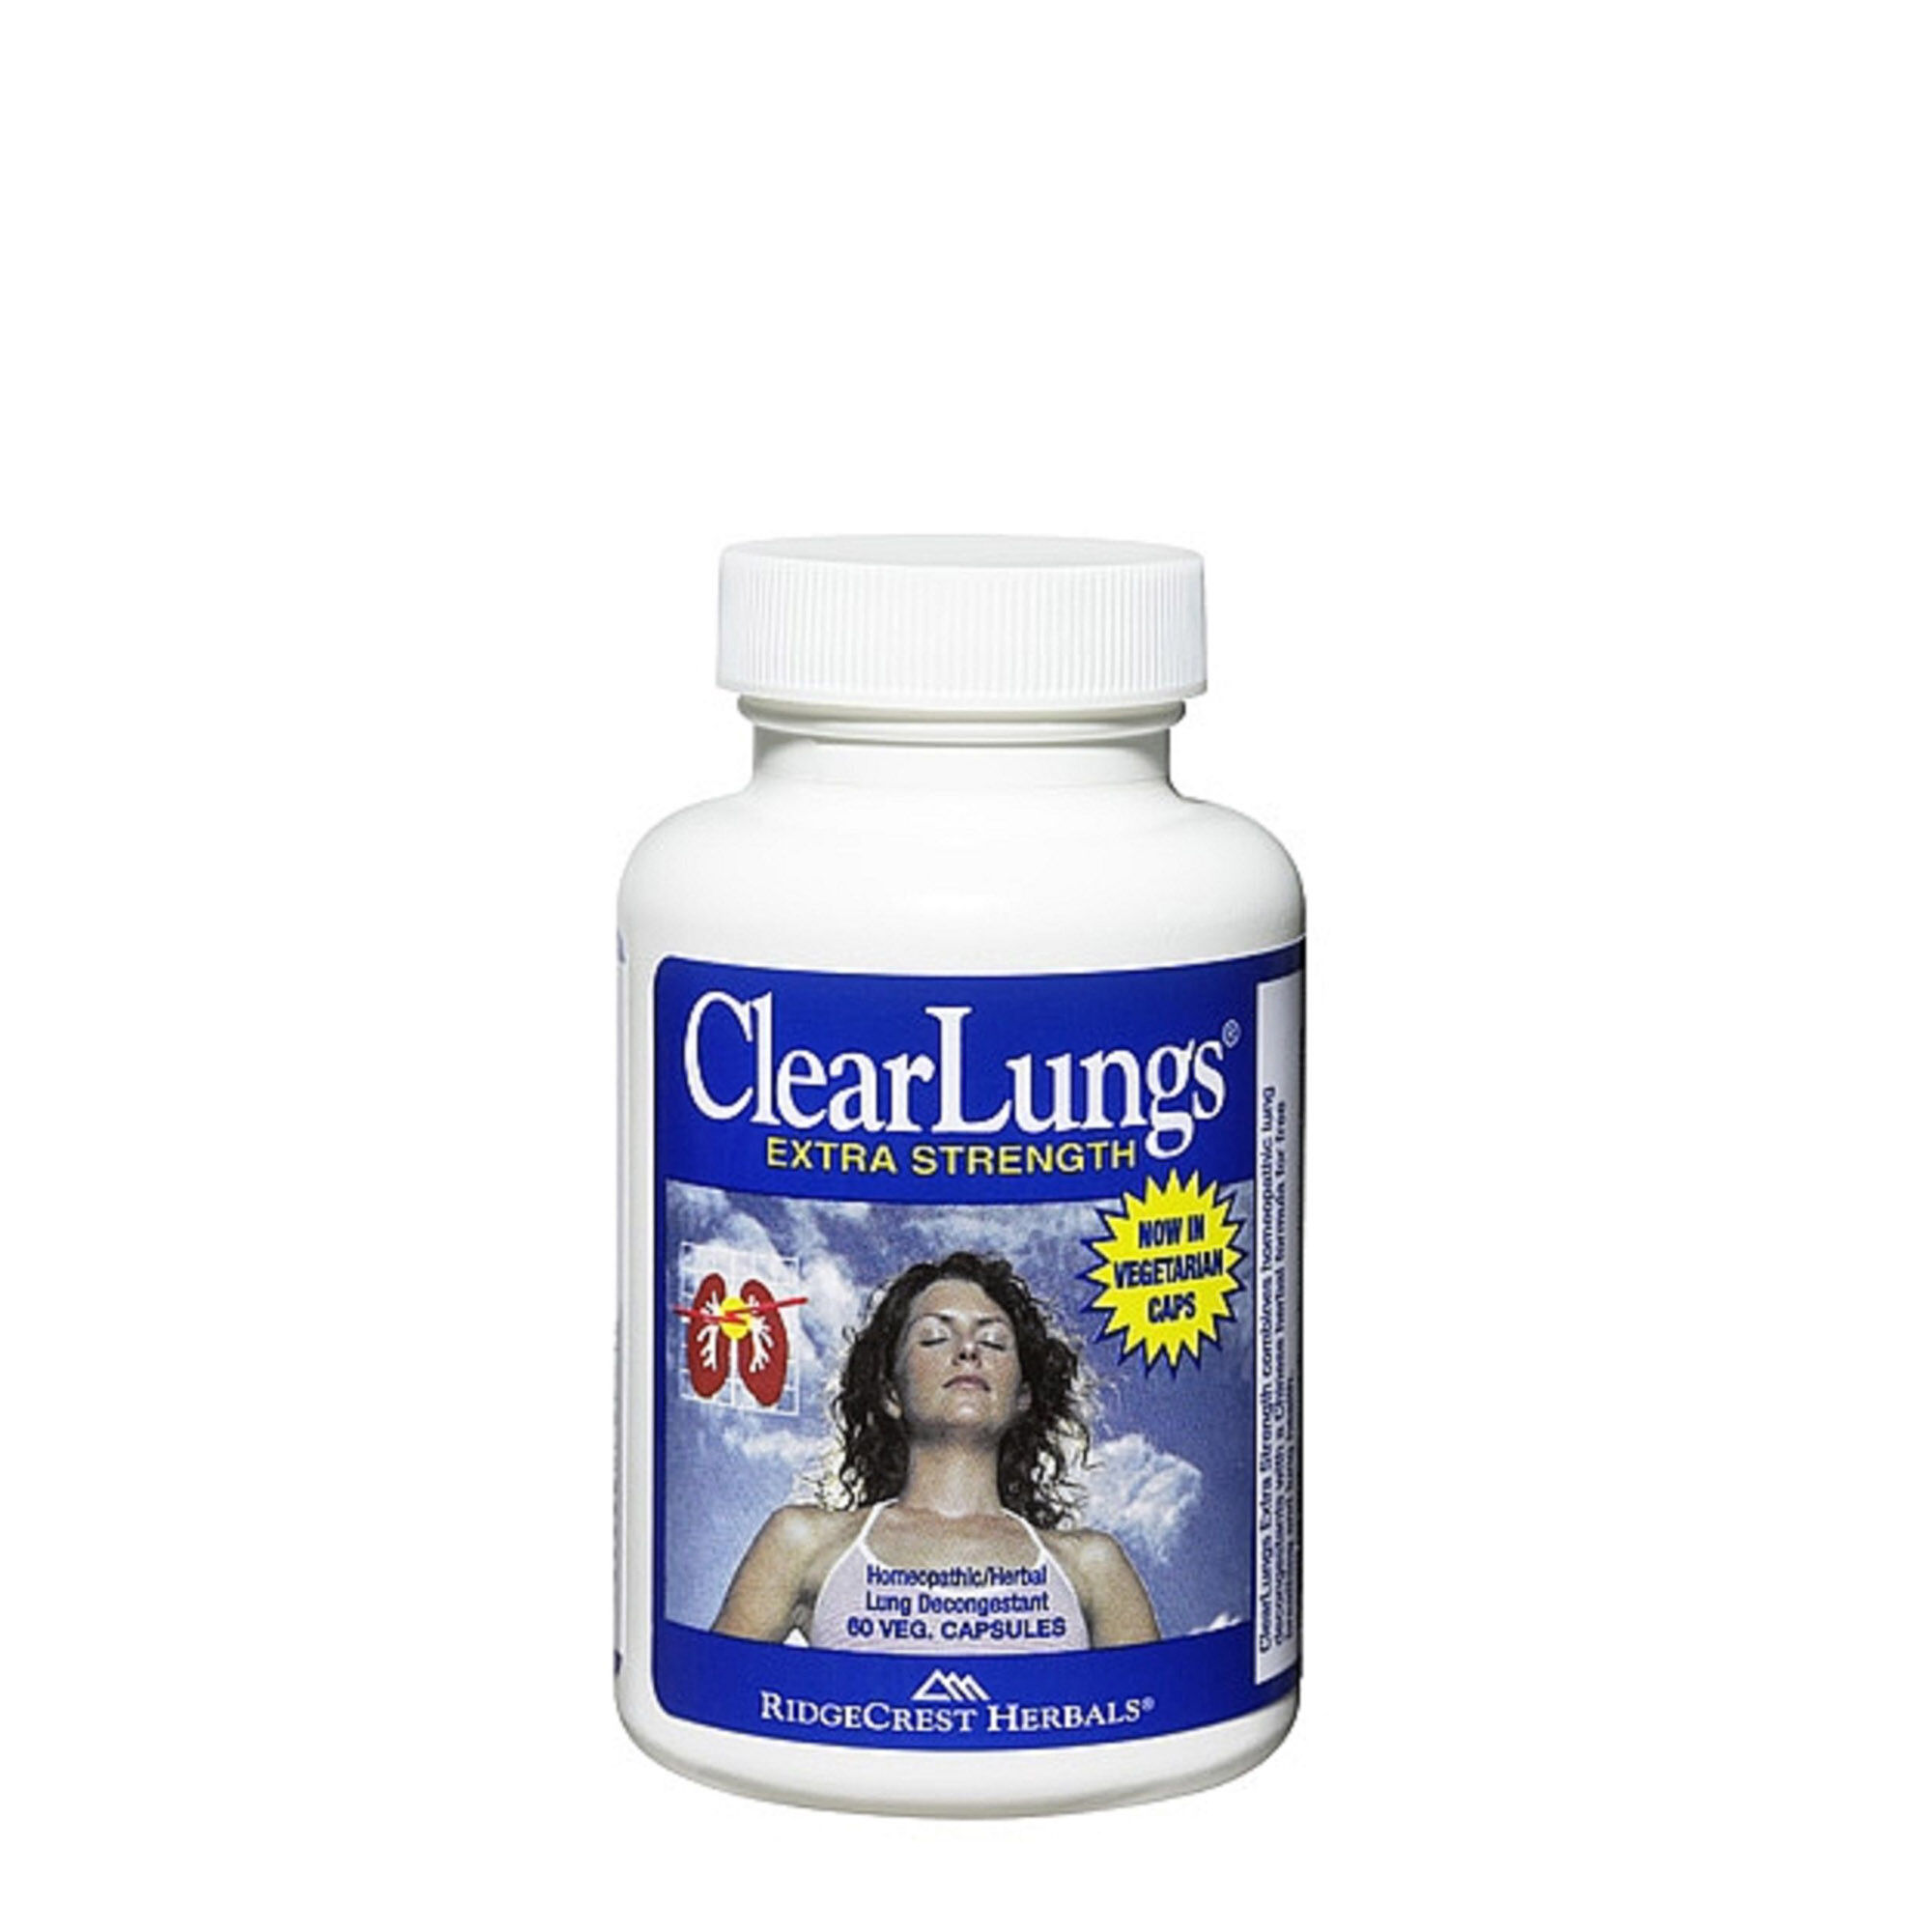 Clear Lungs® Extra Strength